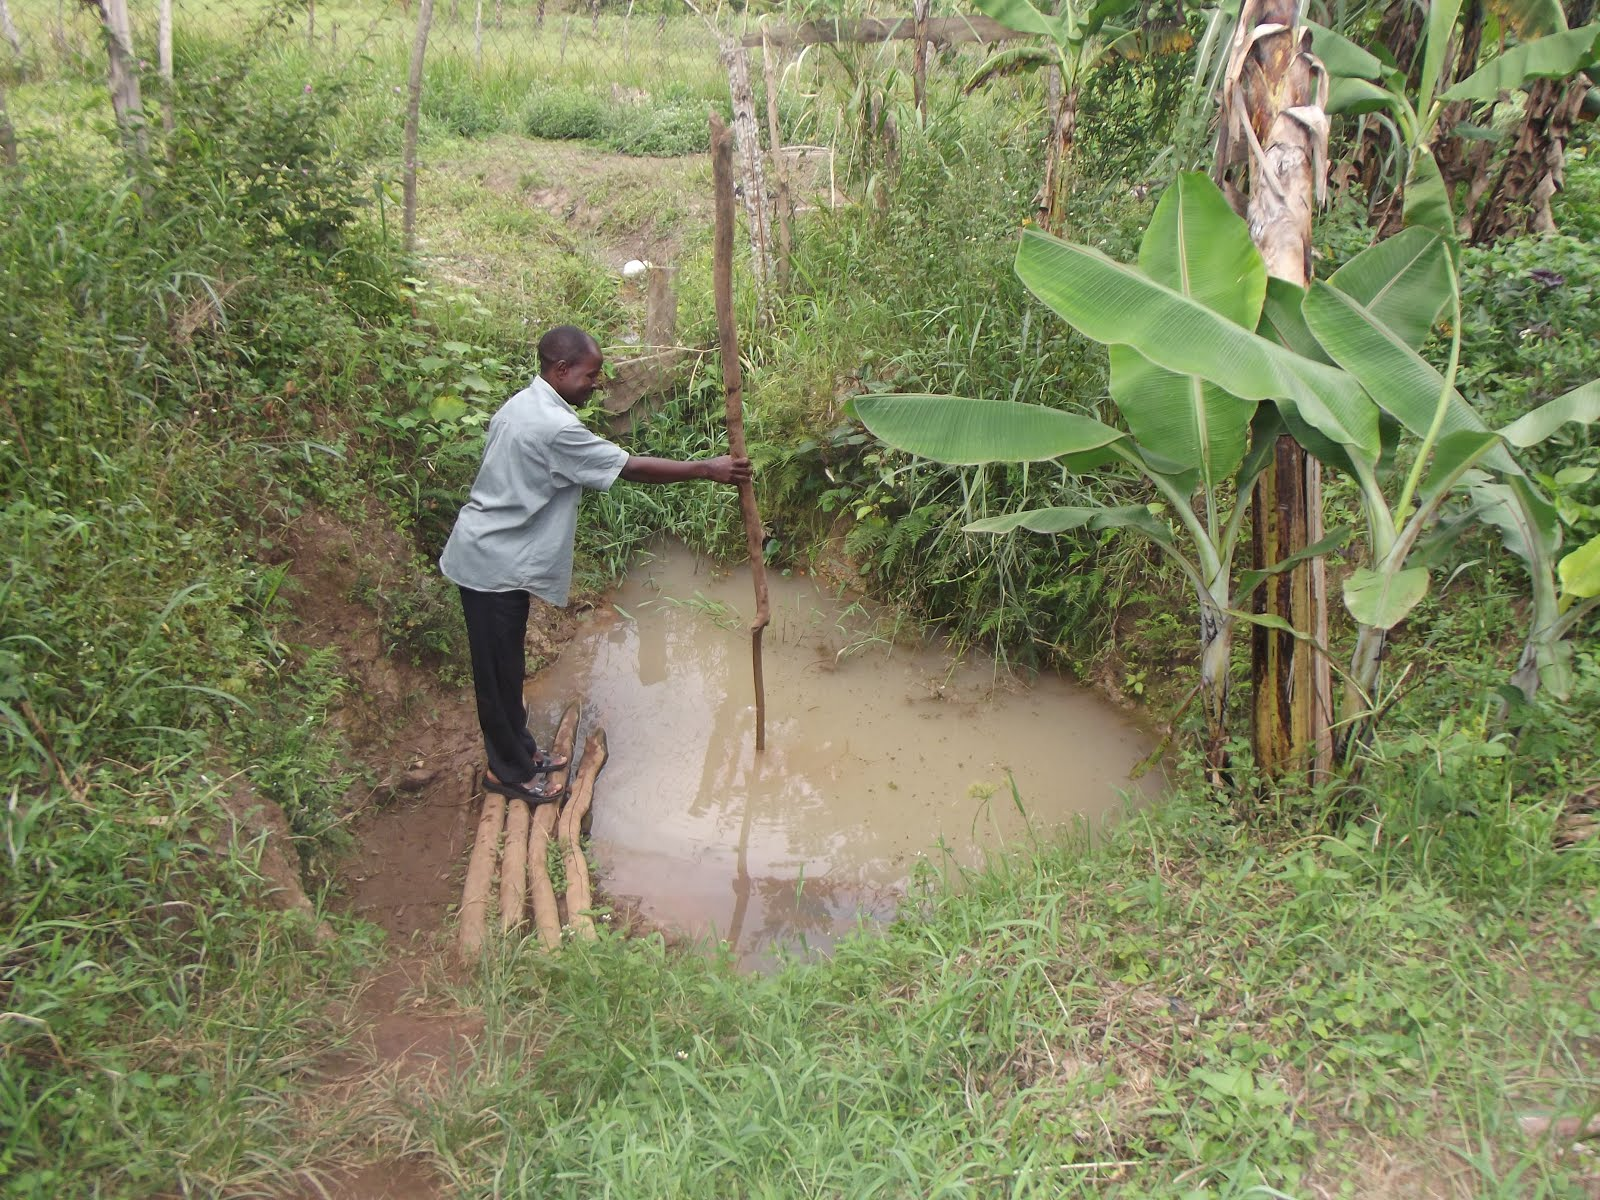 The source of water for 600 people